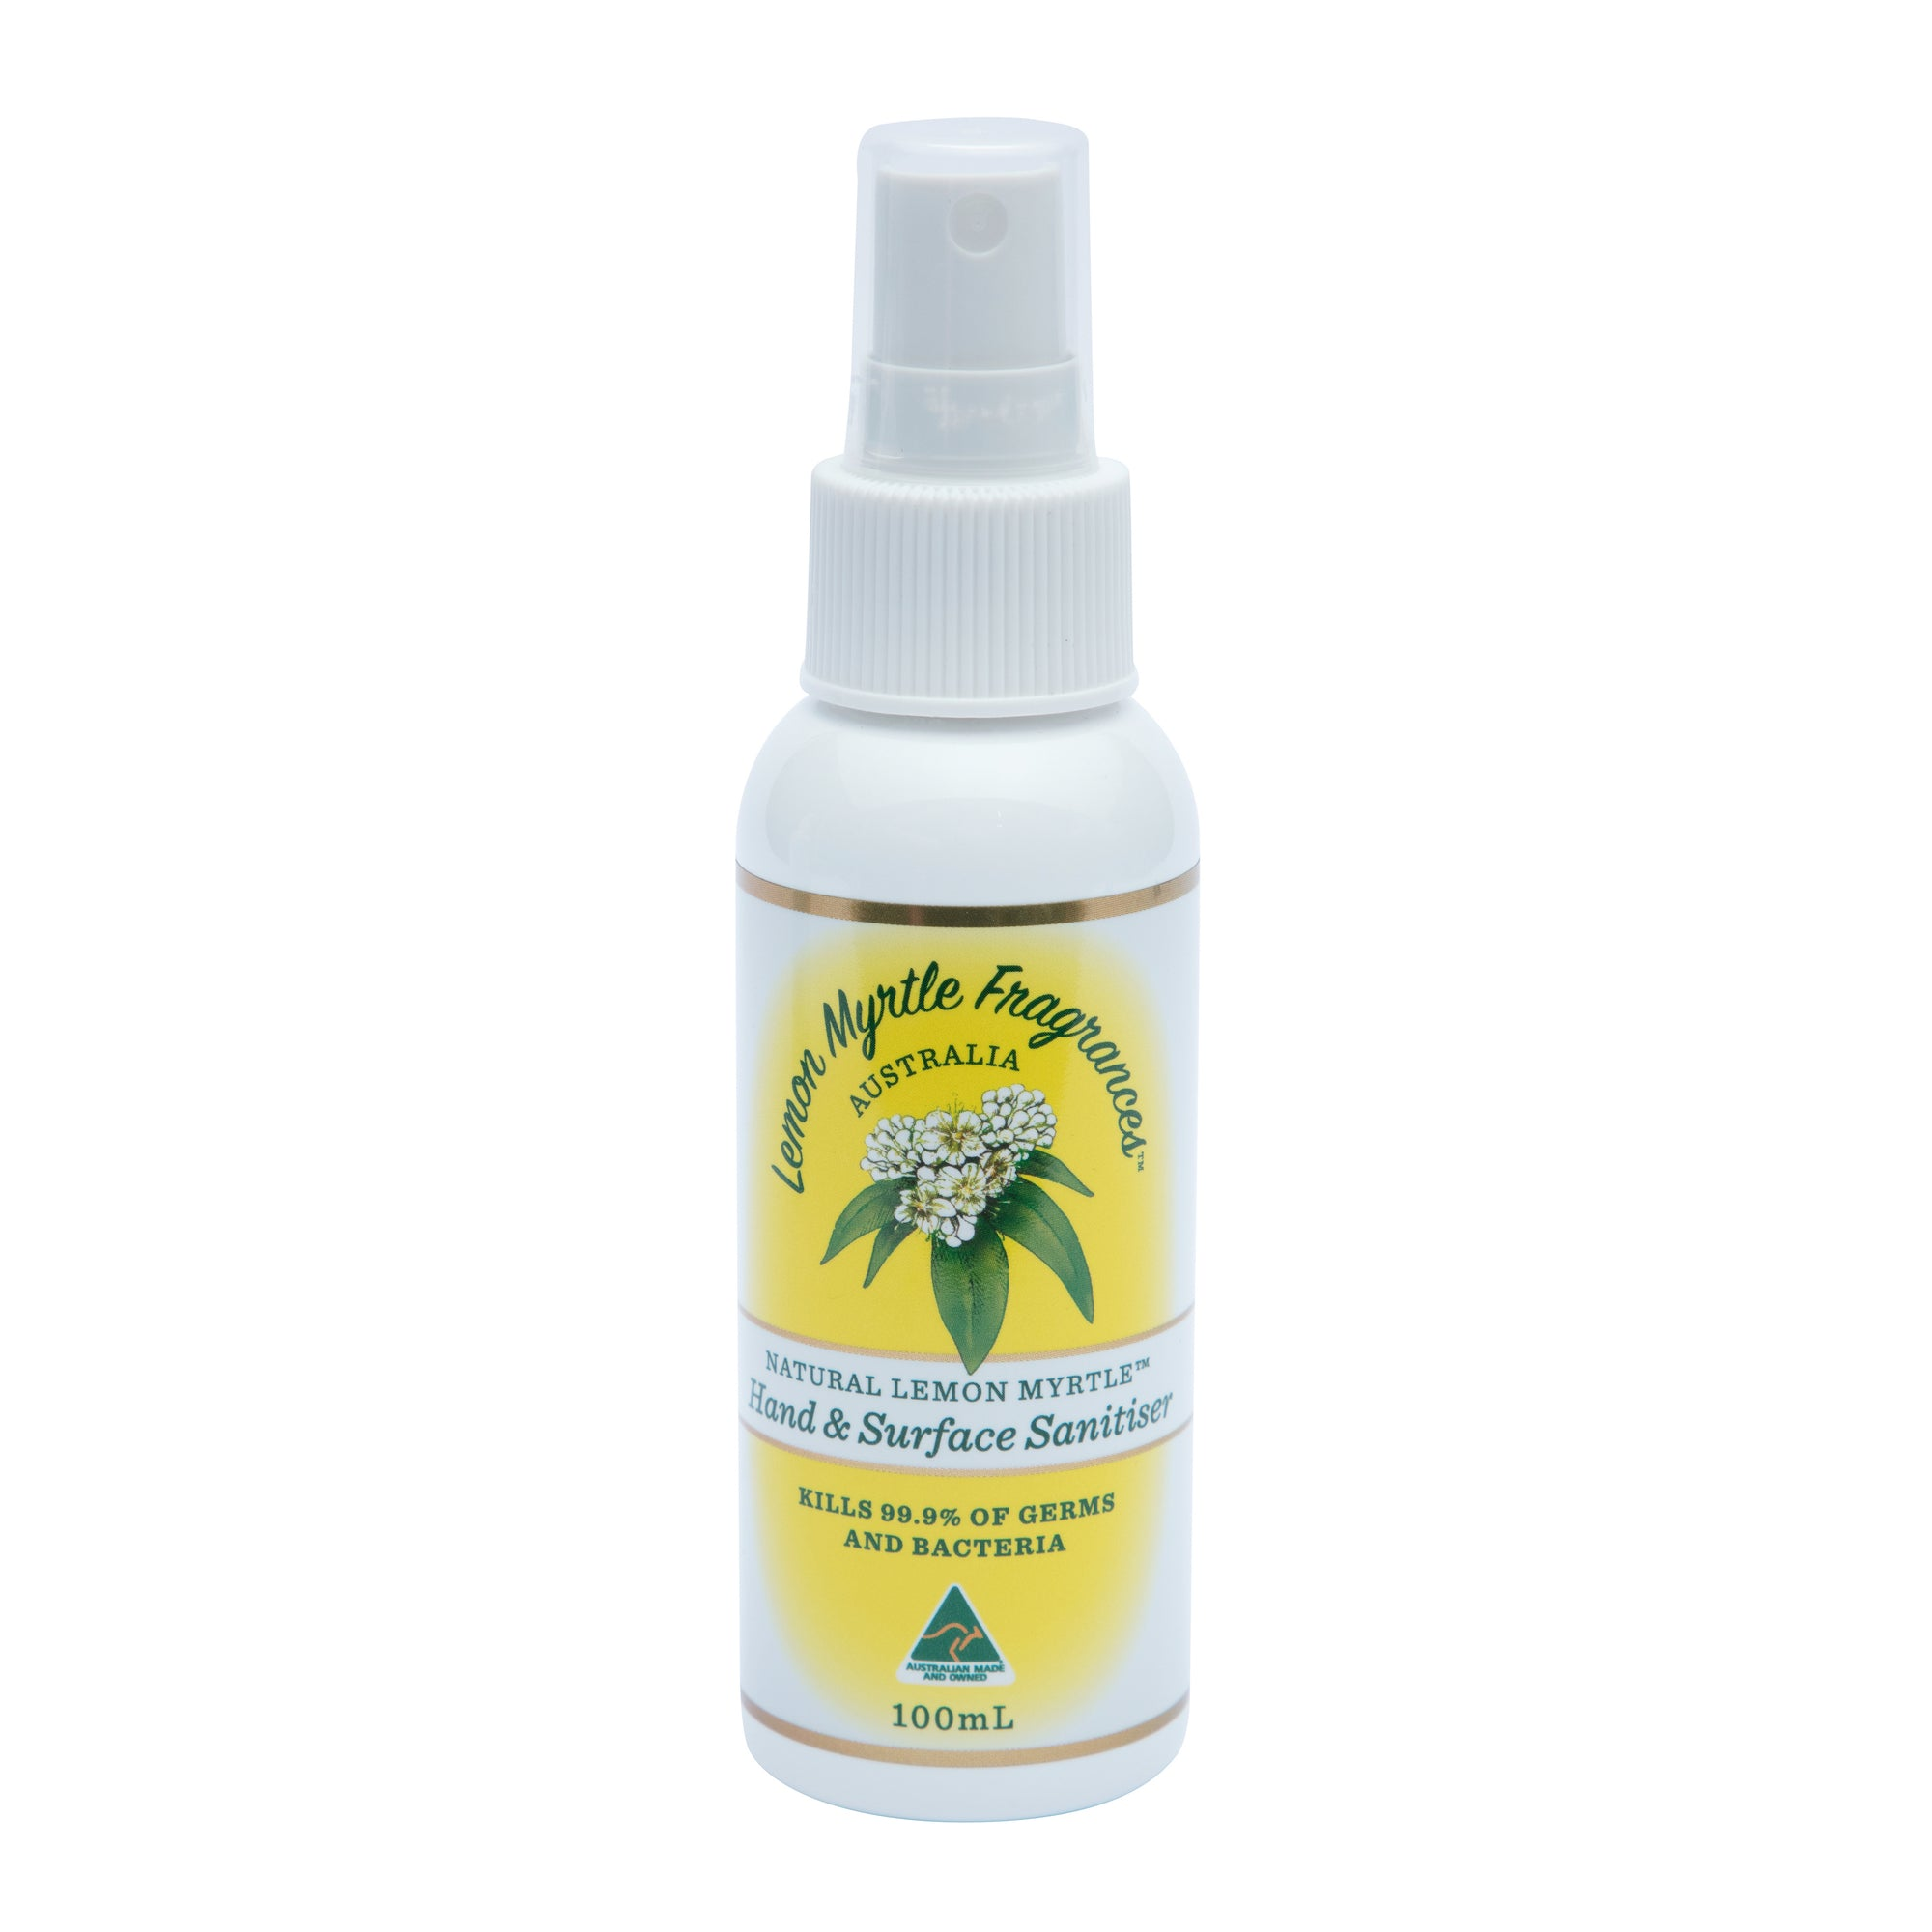 Natural Lemon Myrtle Hand & Surface Sanitiser - 100mL